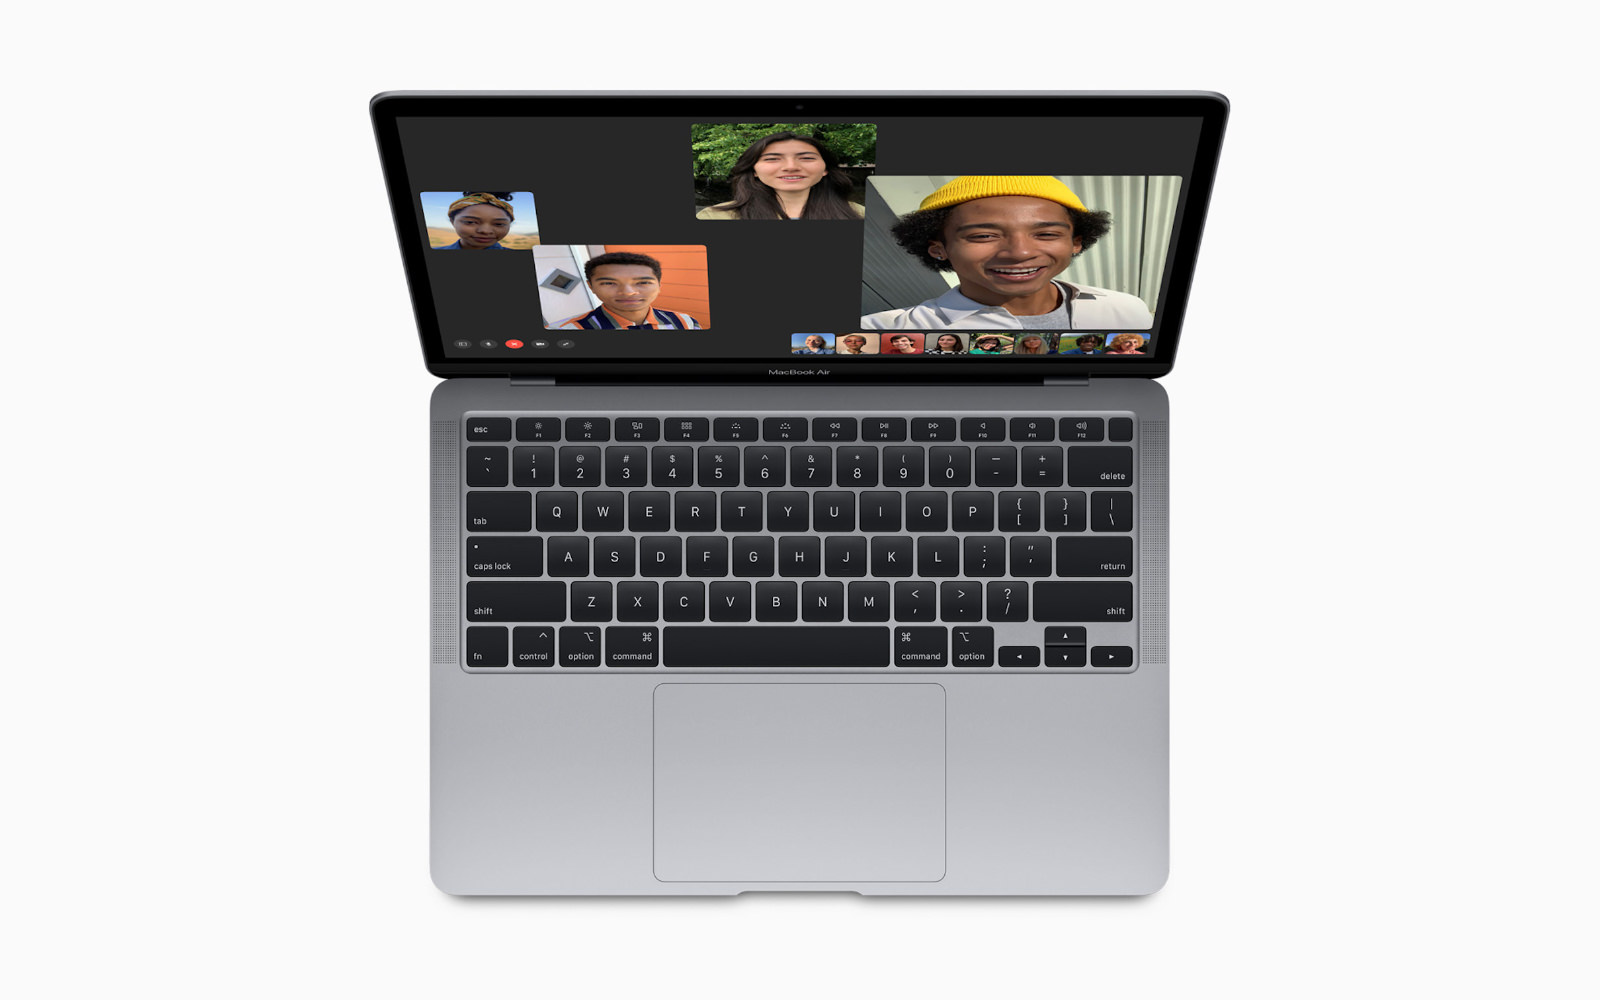 MacBook-Air-2020-Hero.jpg